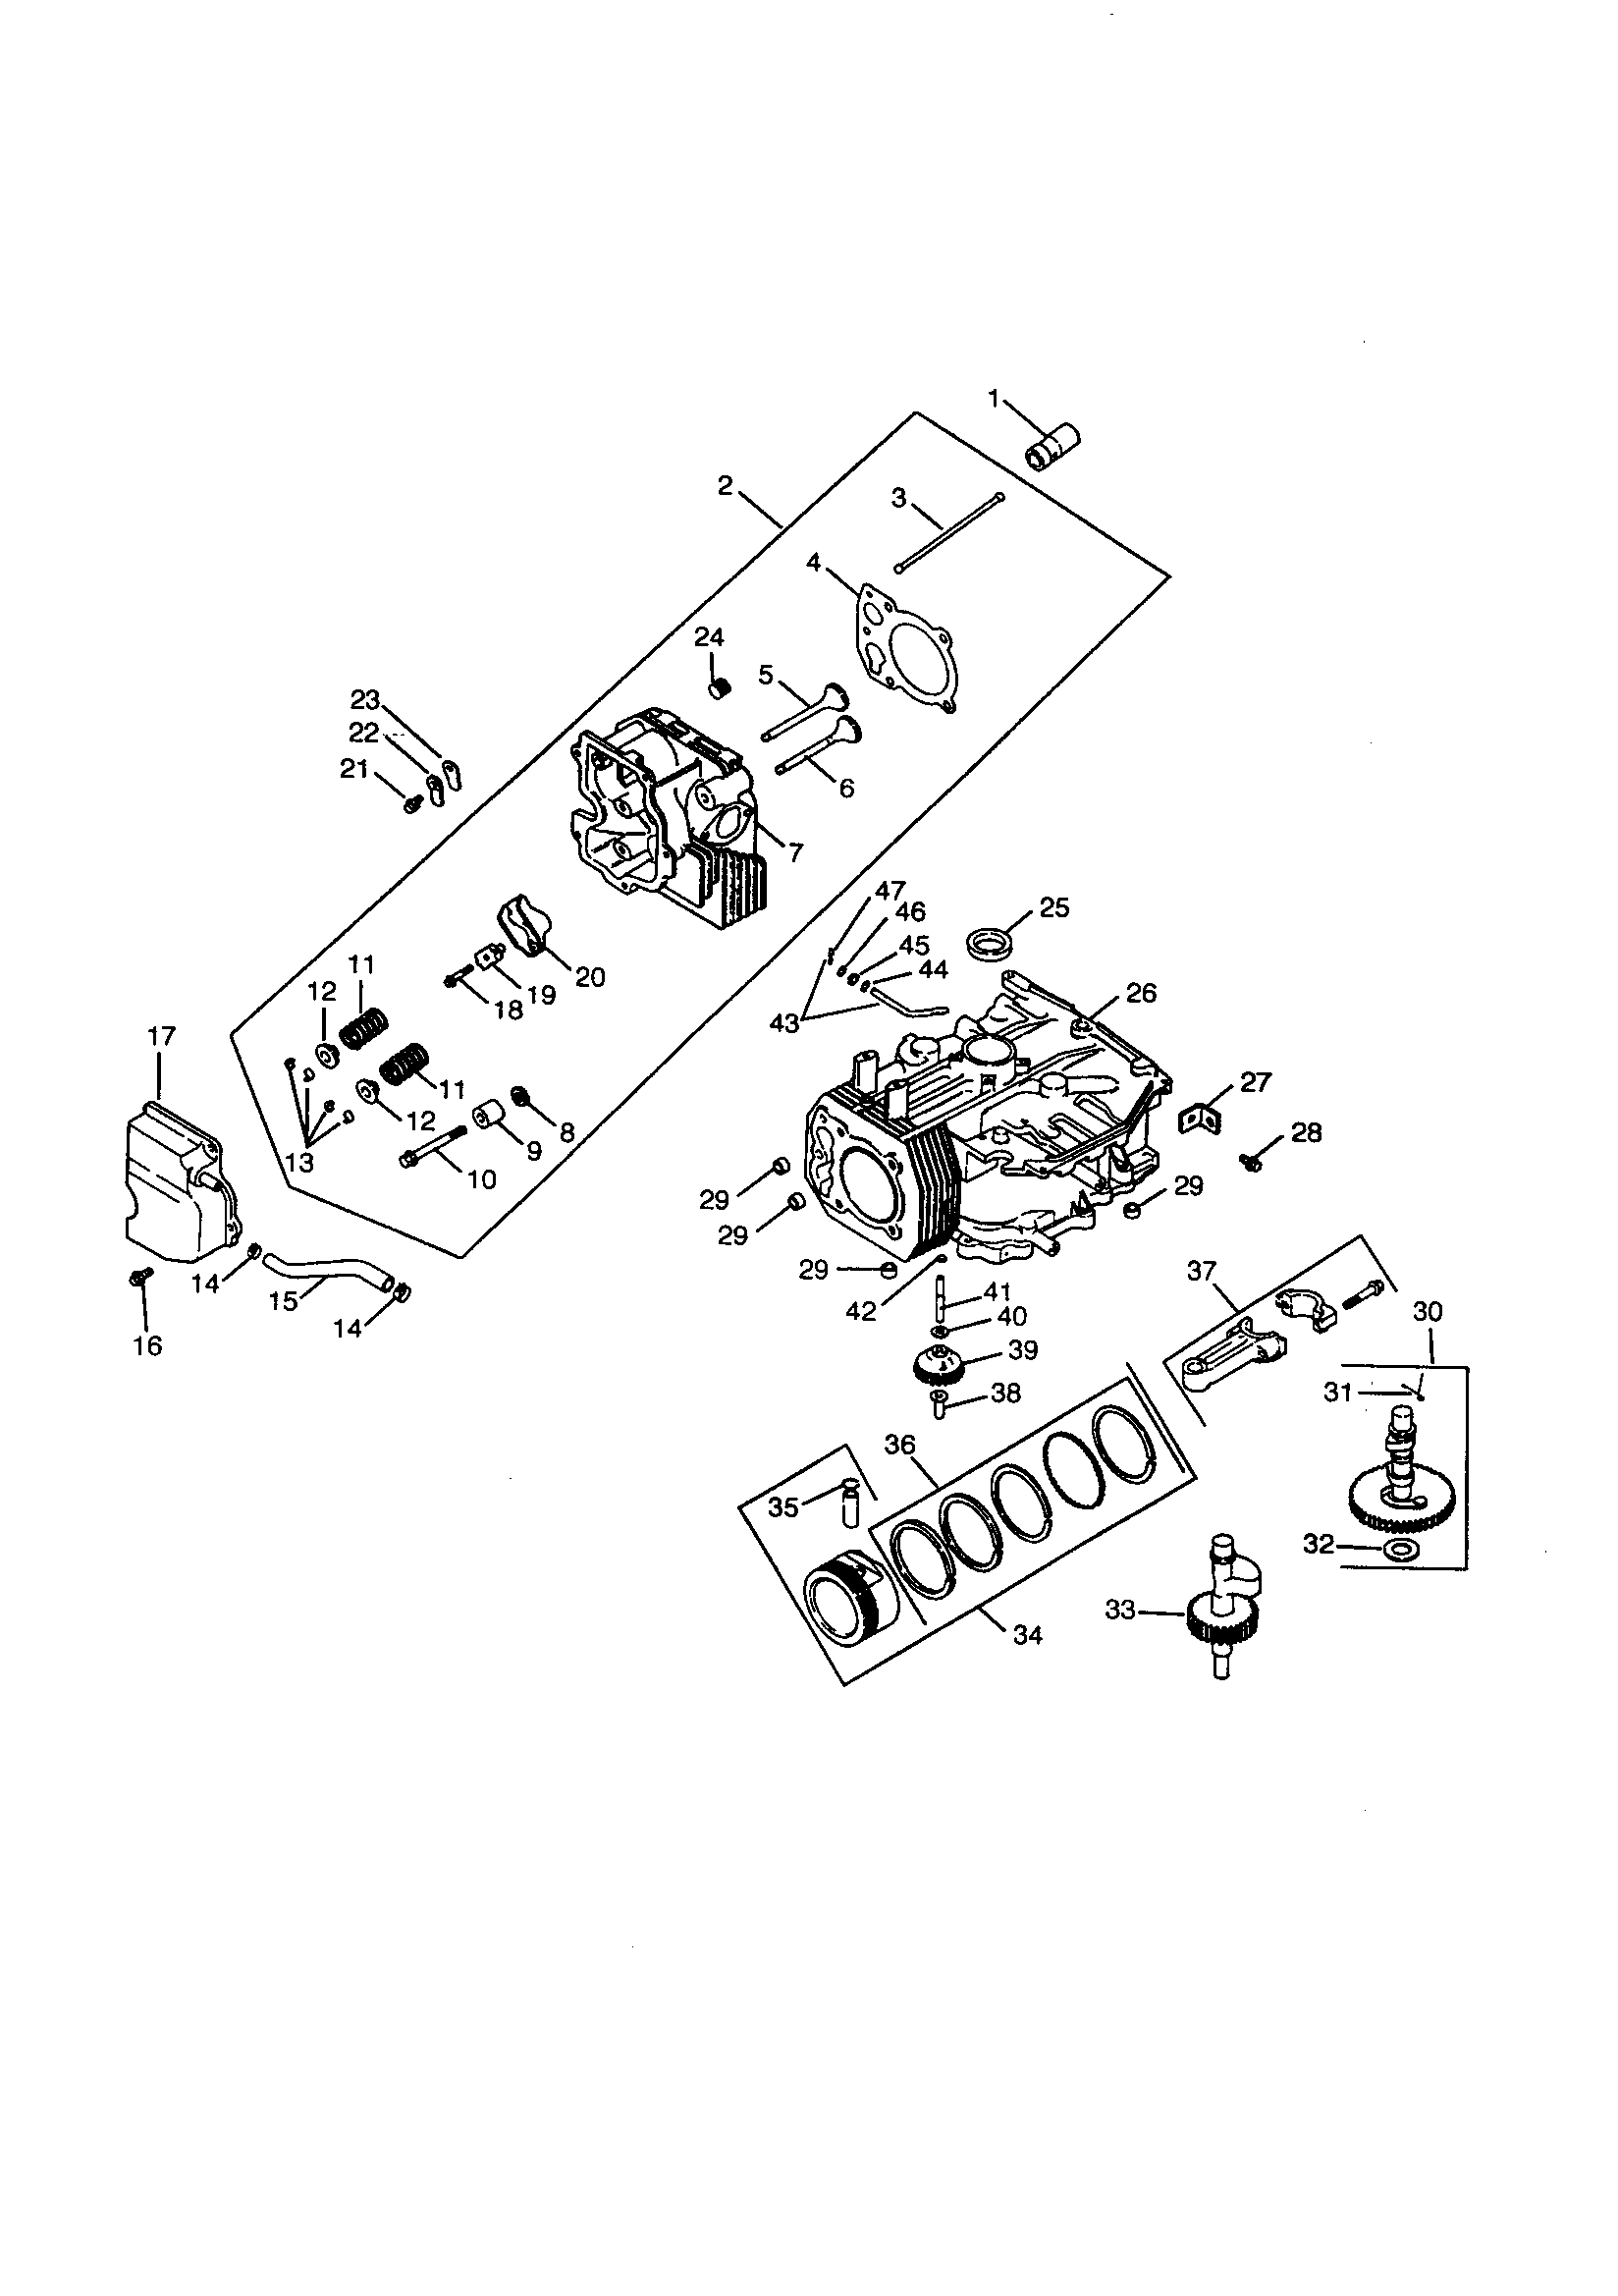 Kohler model CV15S-PS41588 engine genuine parts